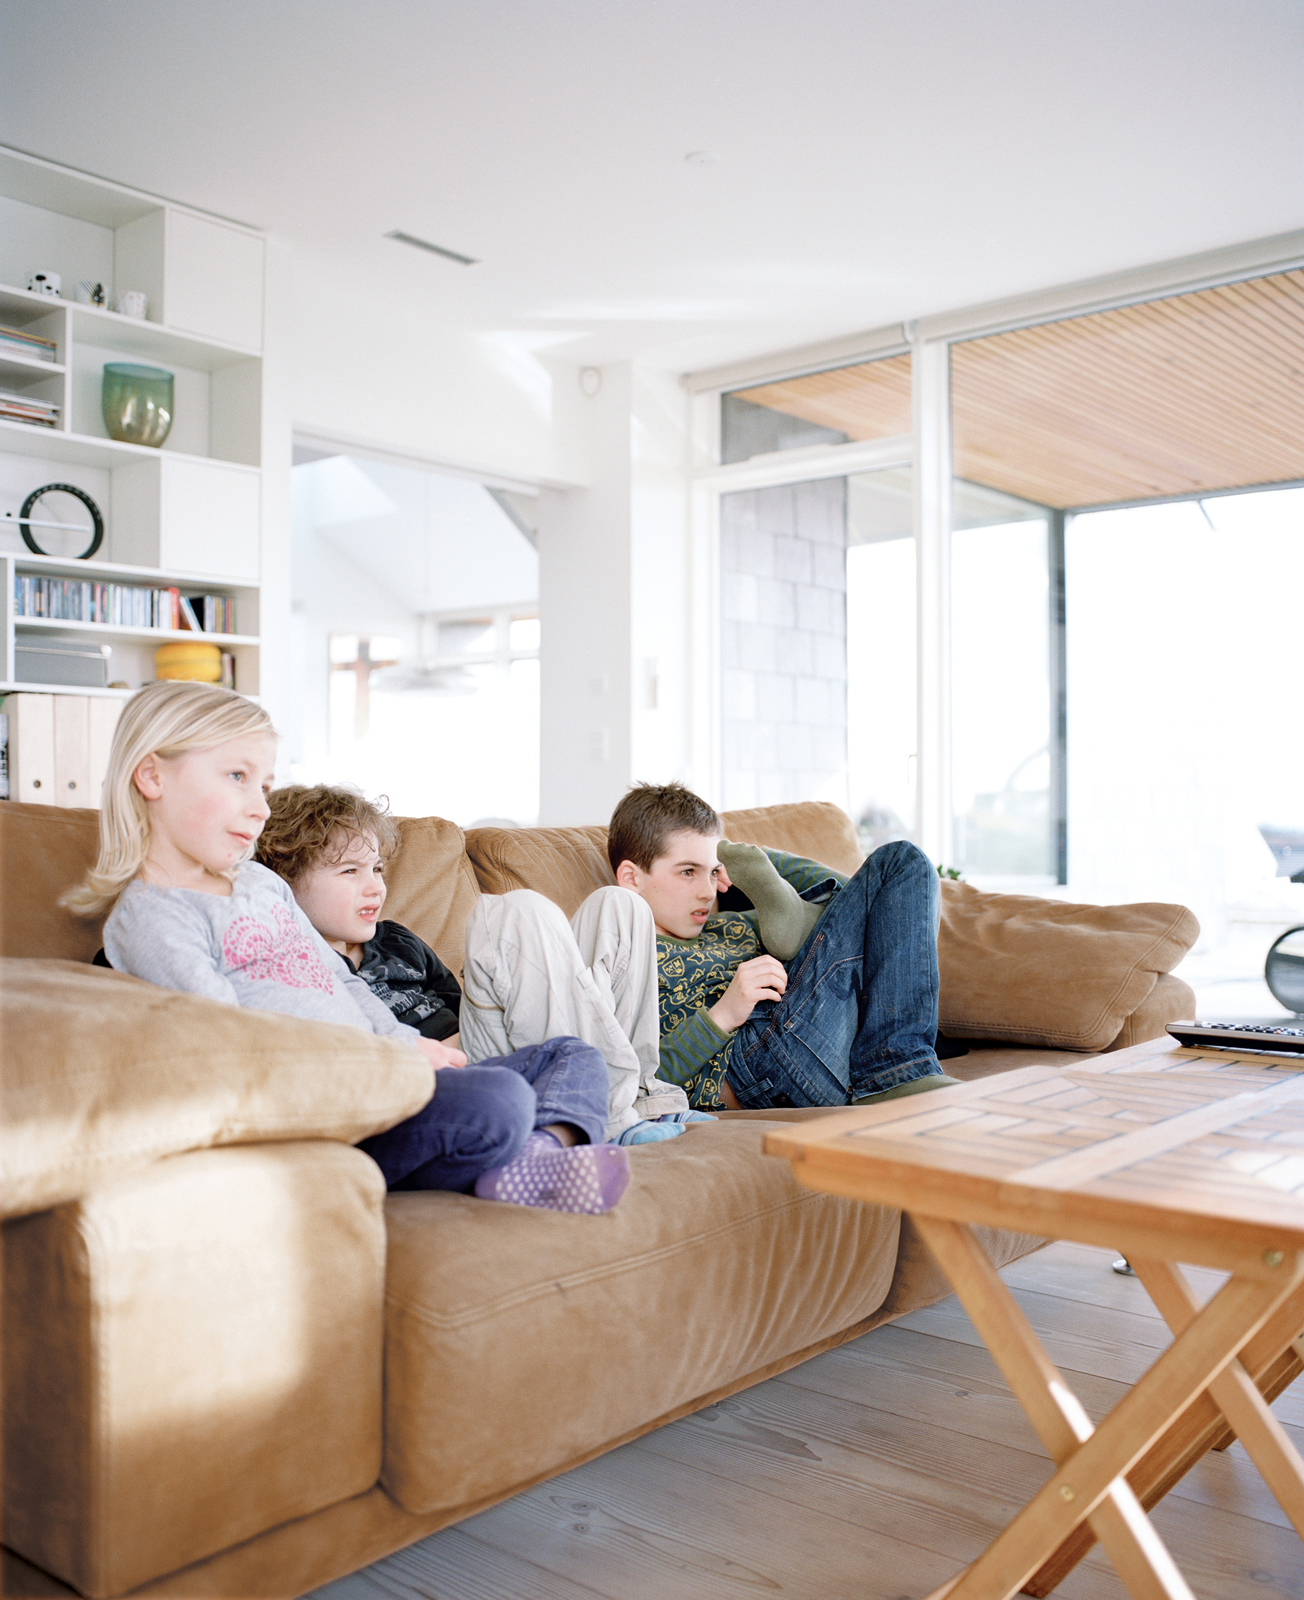 Axel, Anna, and a friend watch television in the living room.